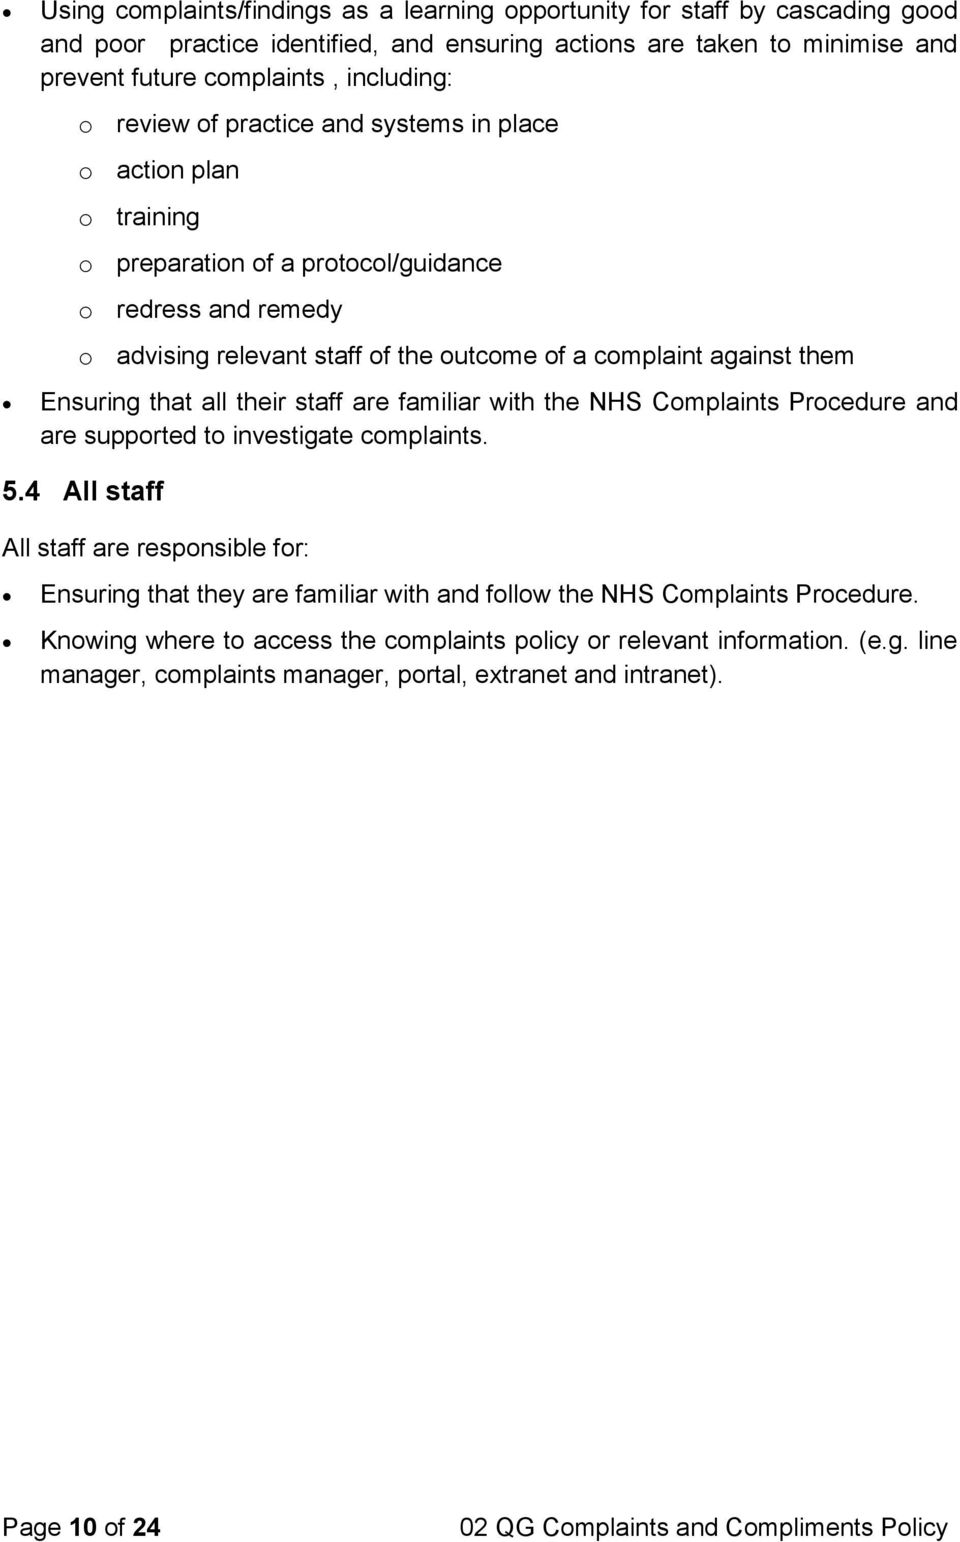 Ensuring that all their staff are familiar with the NHS Complaints Procedure and are supported to investigate complaints. 5.